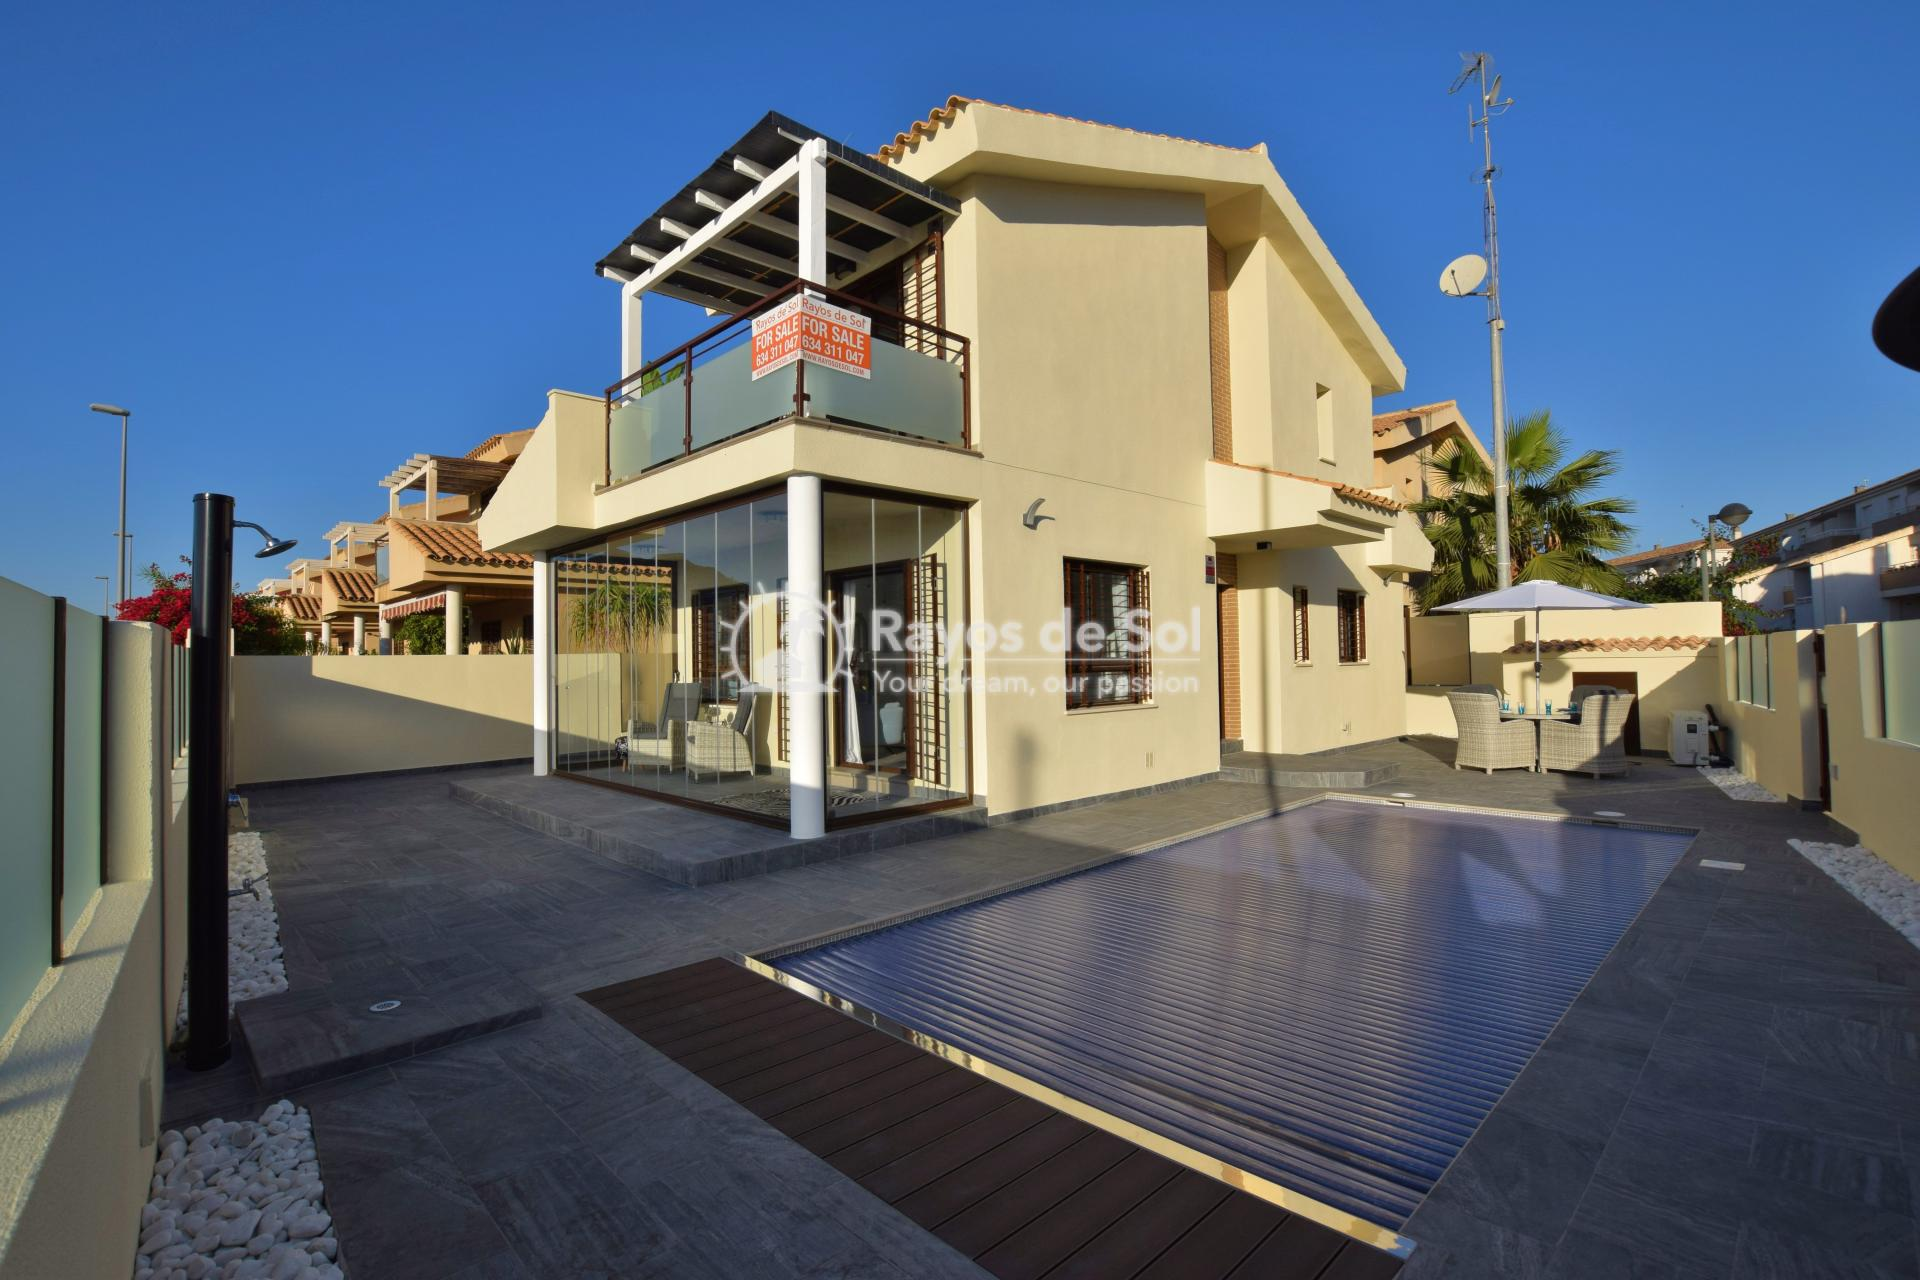 Stunning detached villa  in San Cayetano, Costa Cálida (SCRE0032) - 1